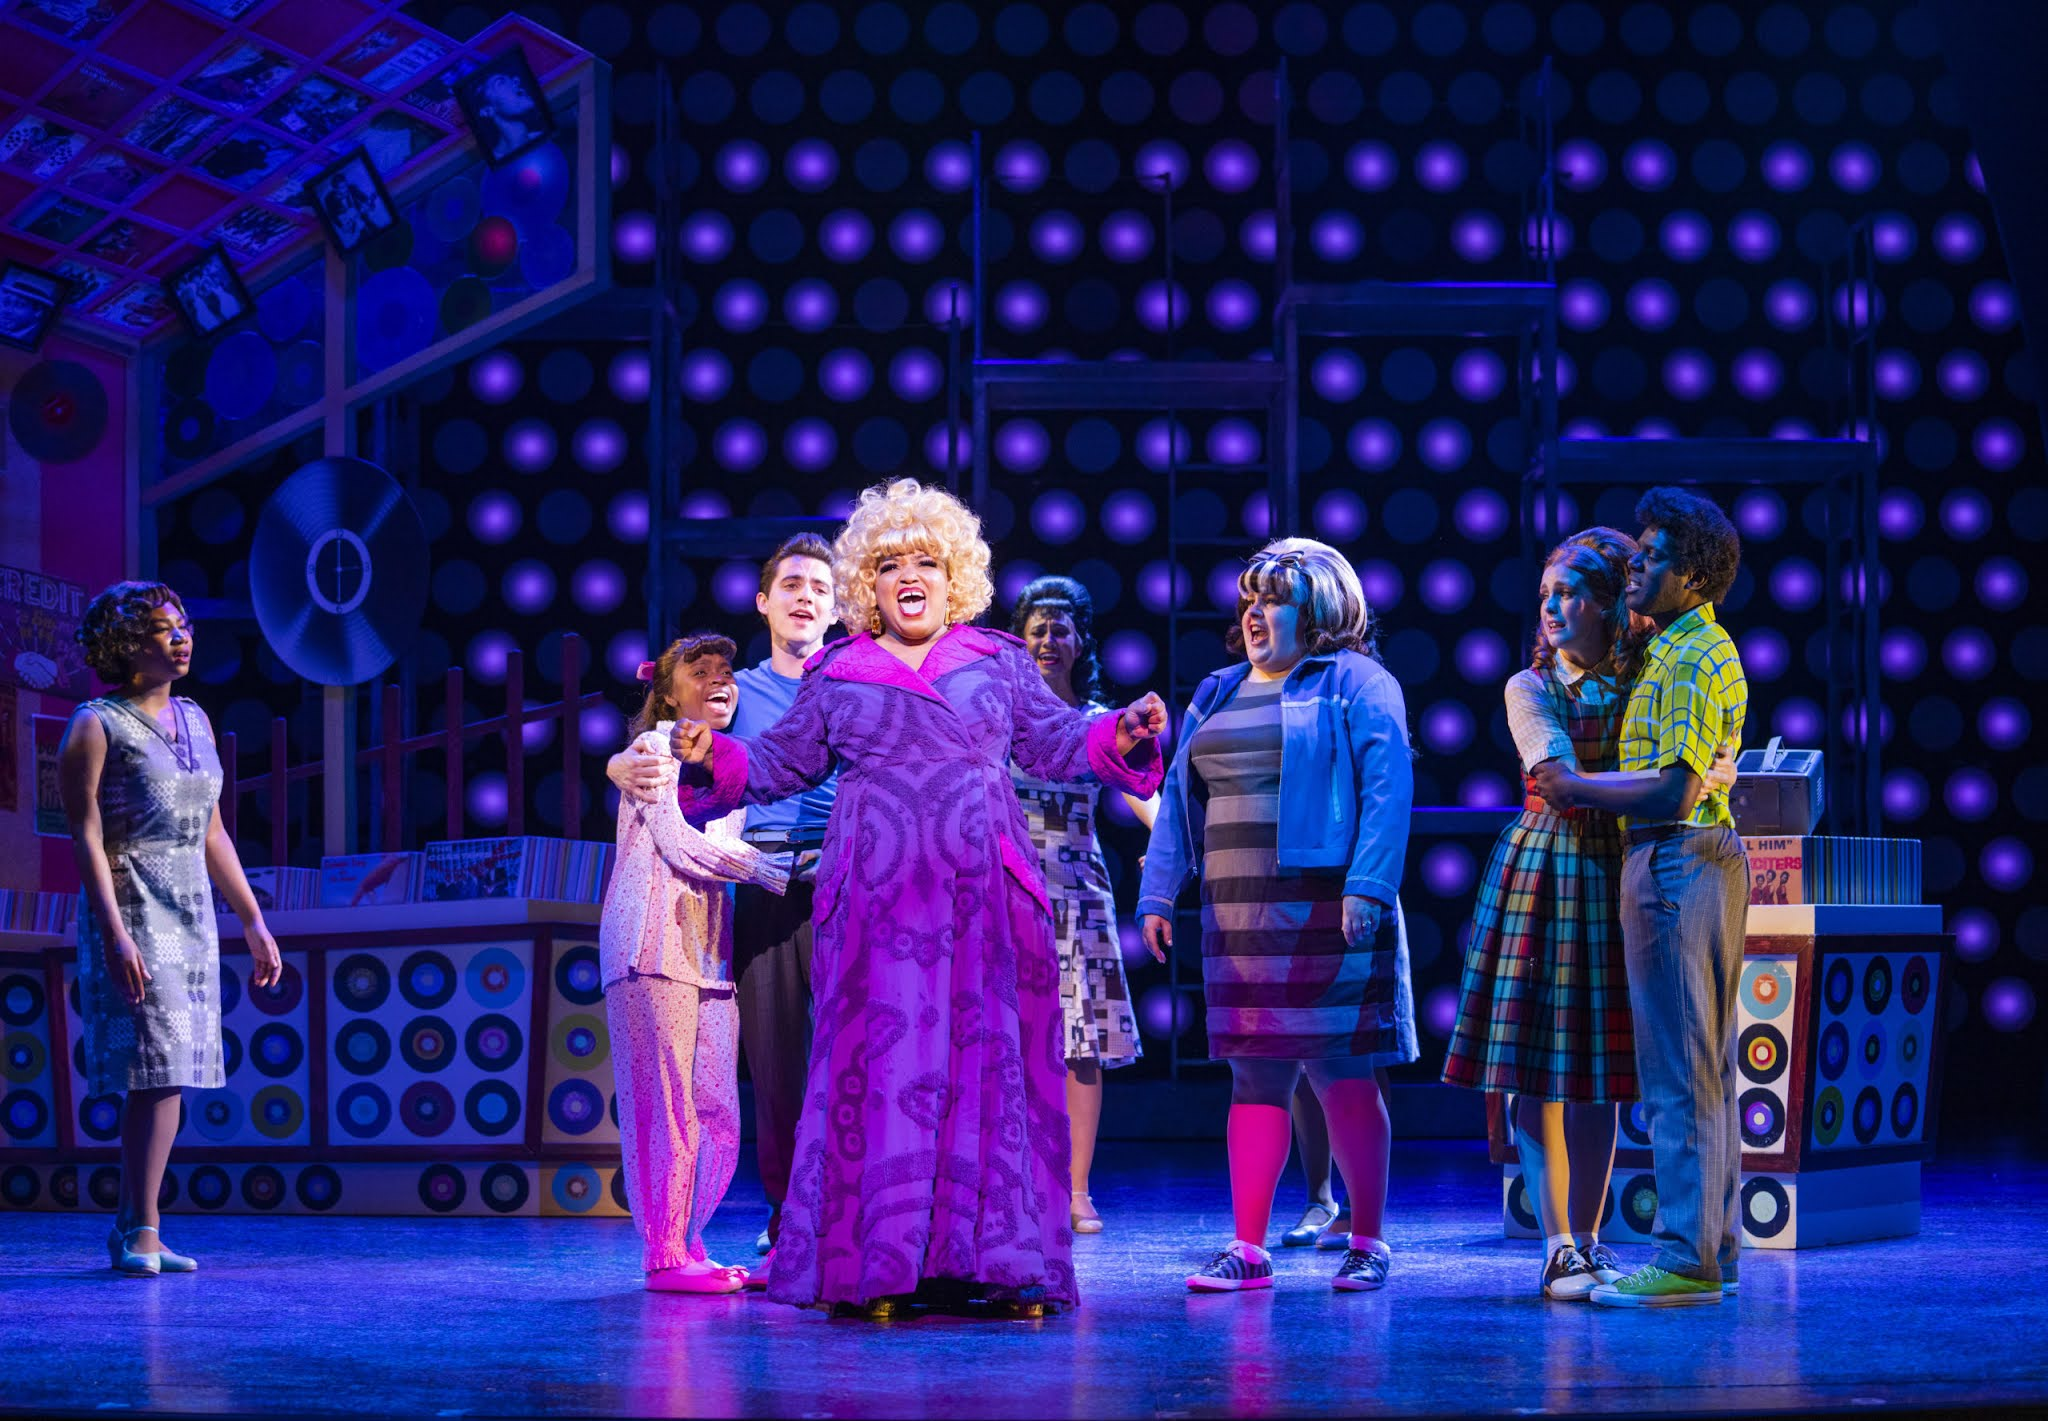 Marisha Wallace is performing on stage at Hairspray the musical in the west end as Motormouth Mabel, she is wearing a long purple coat with a 60s print on it and a blonde curly wig.